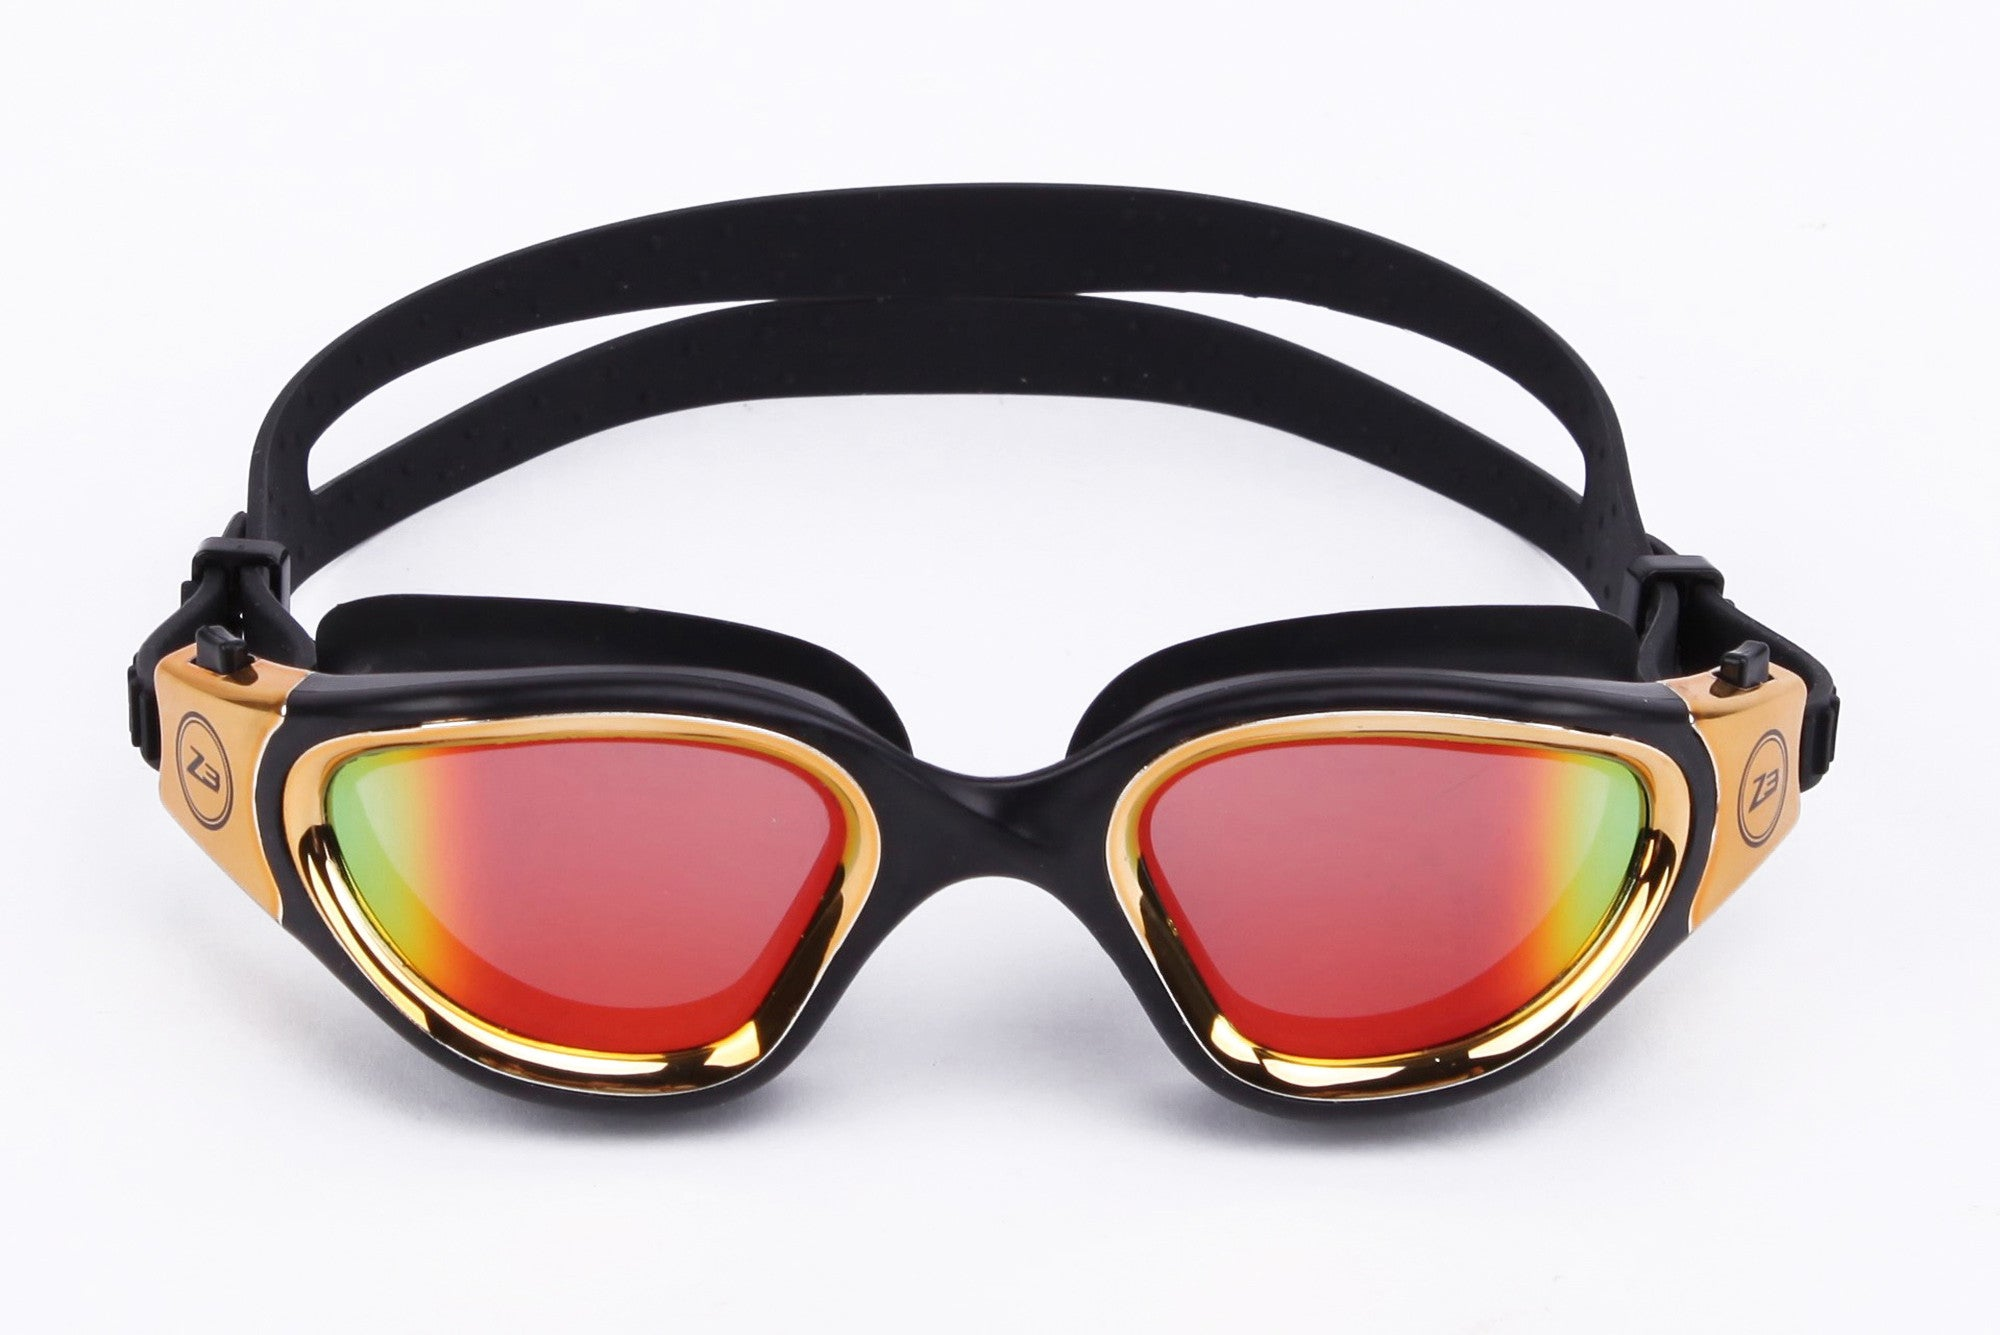 Vapour Goggles Gold